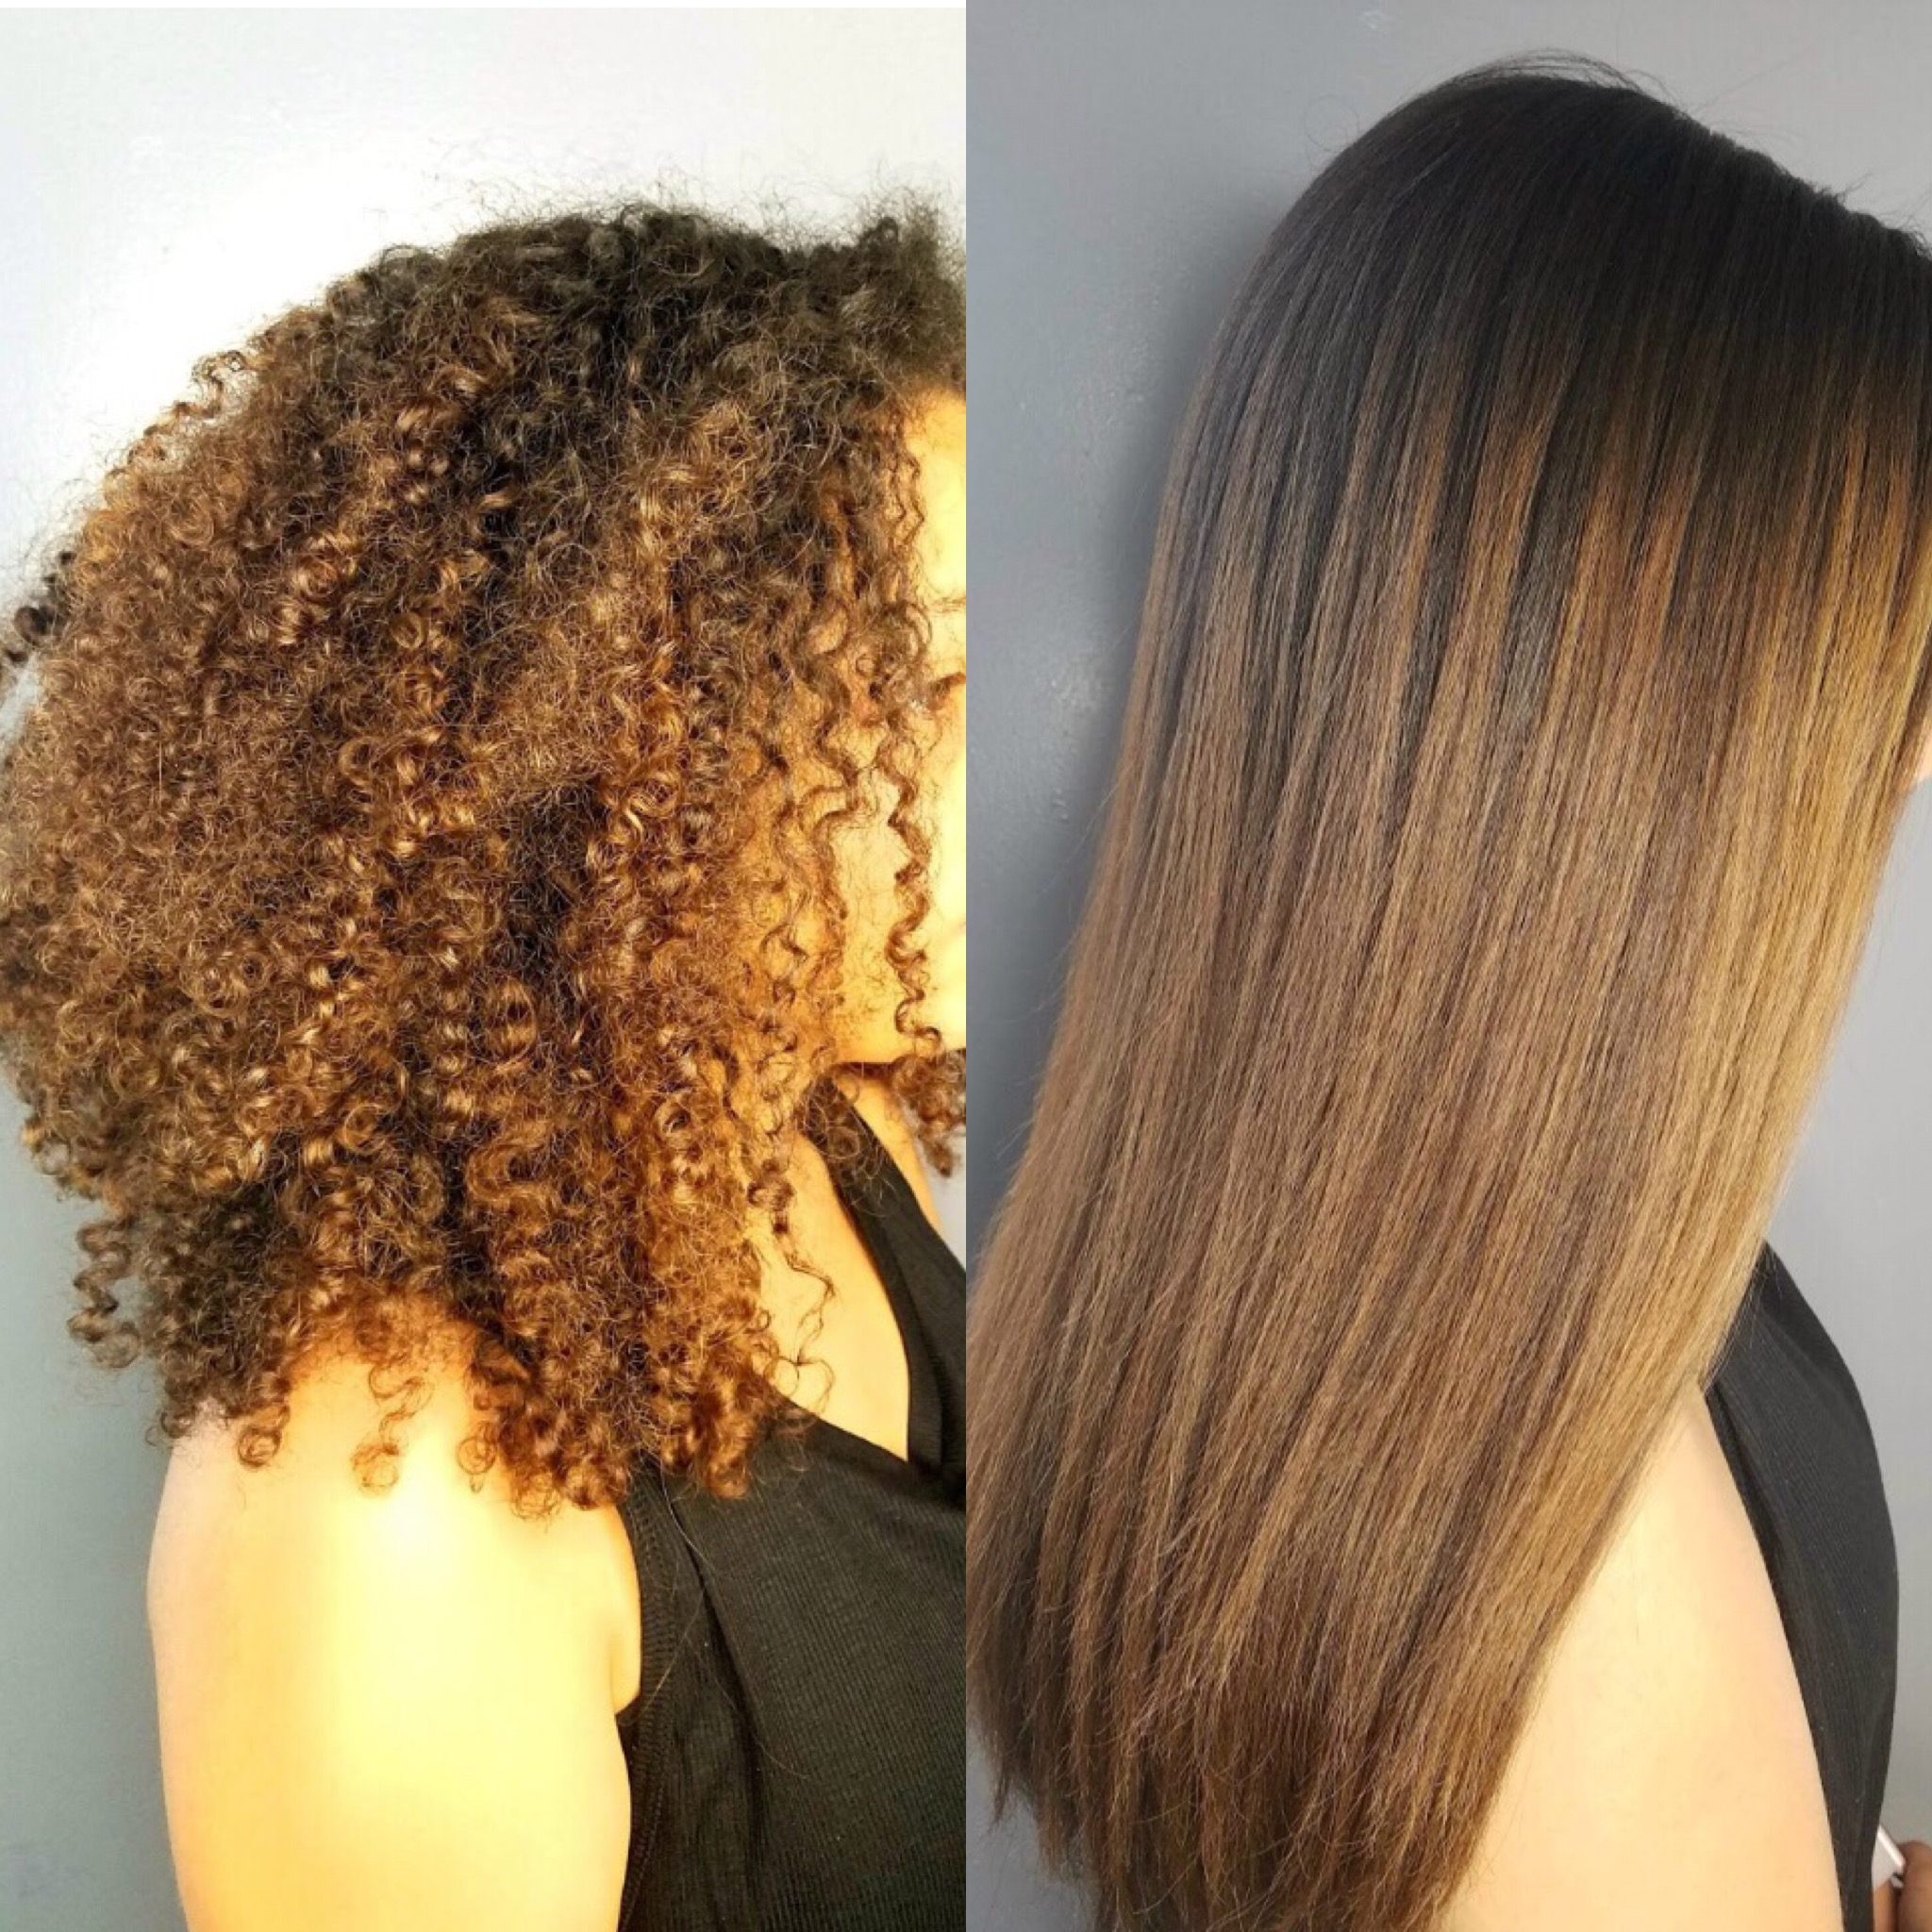 Before and After a Thermal Silkening